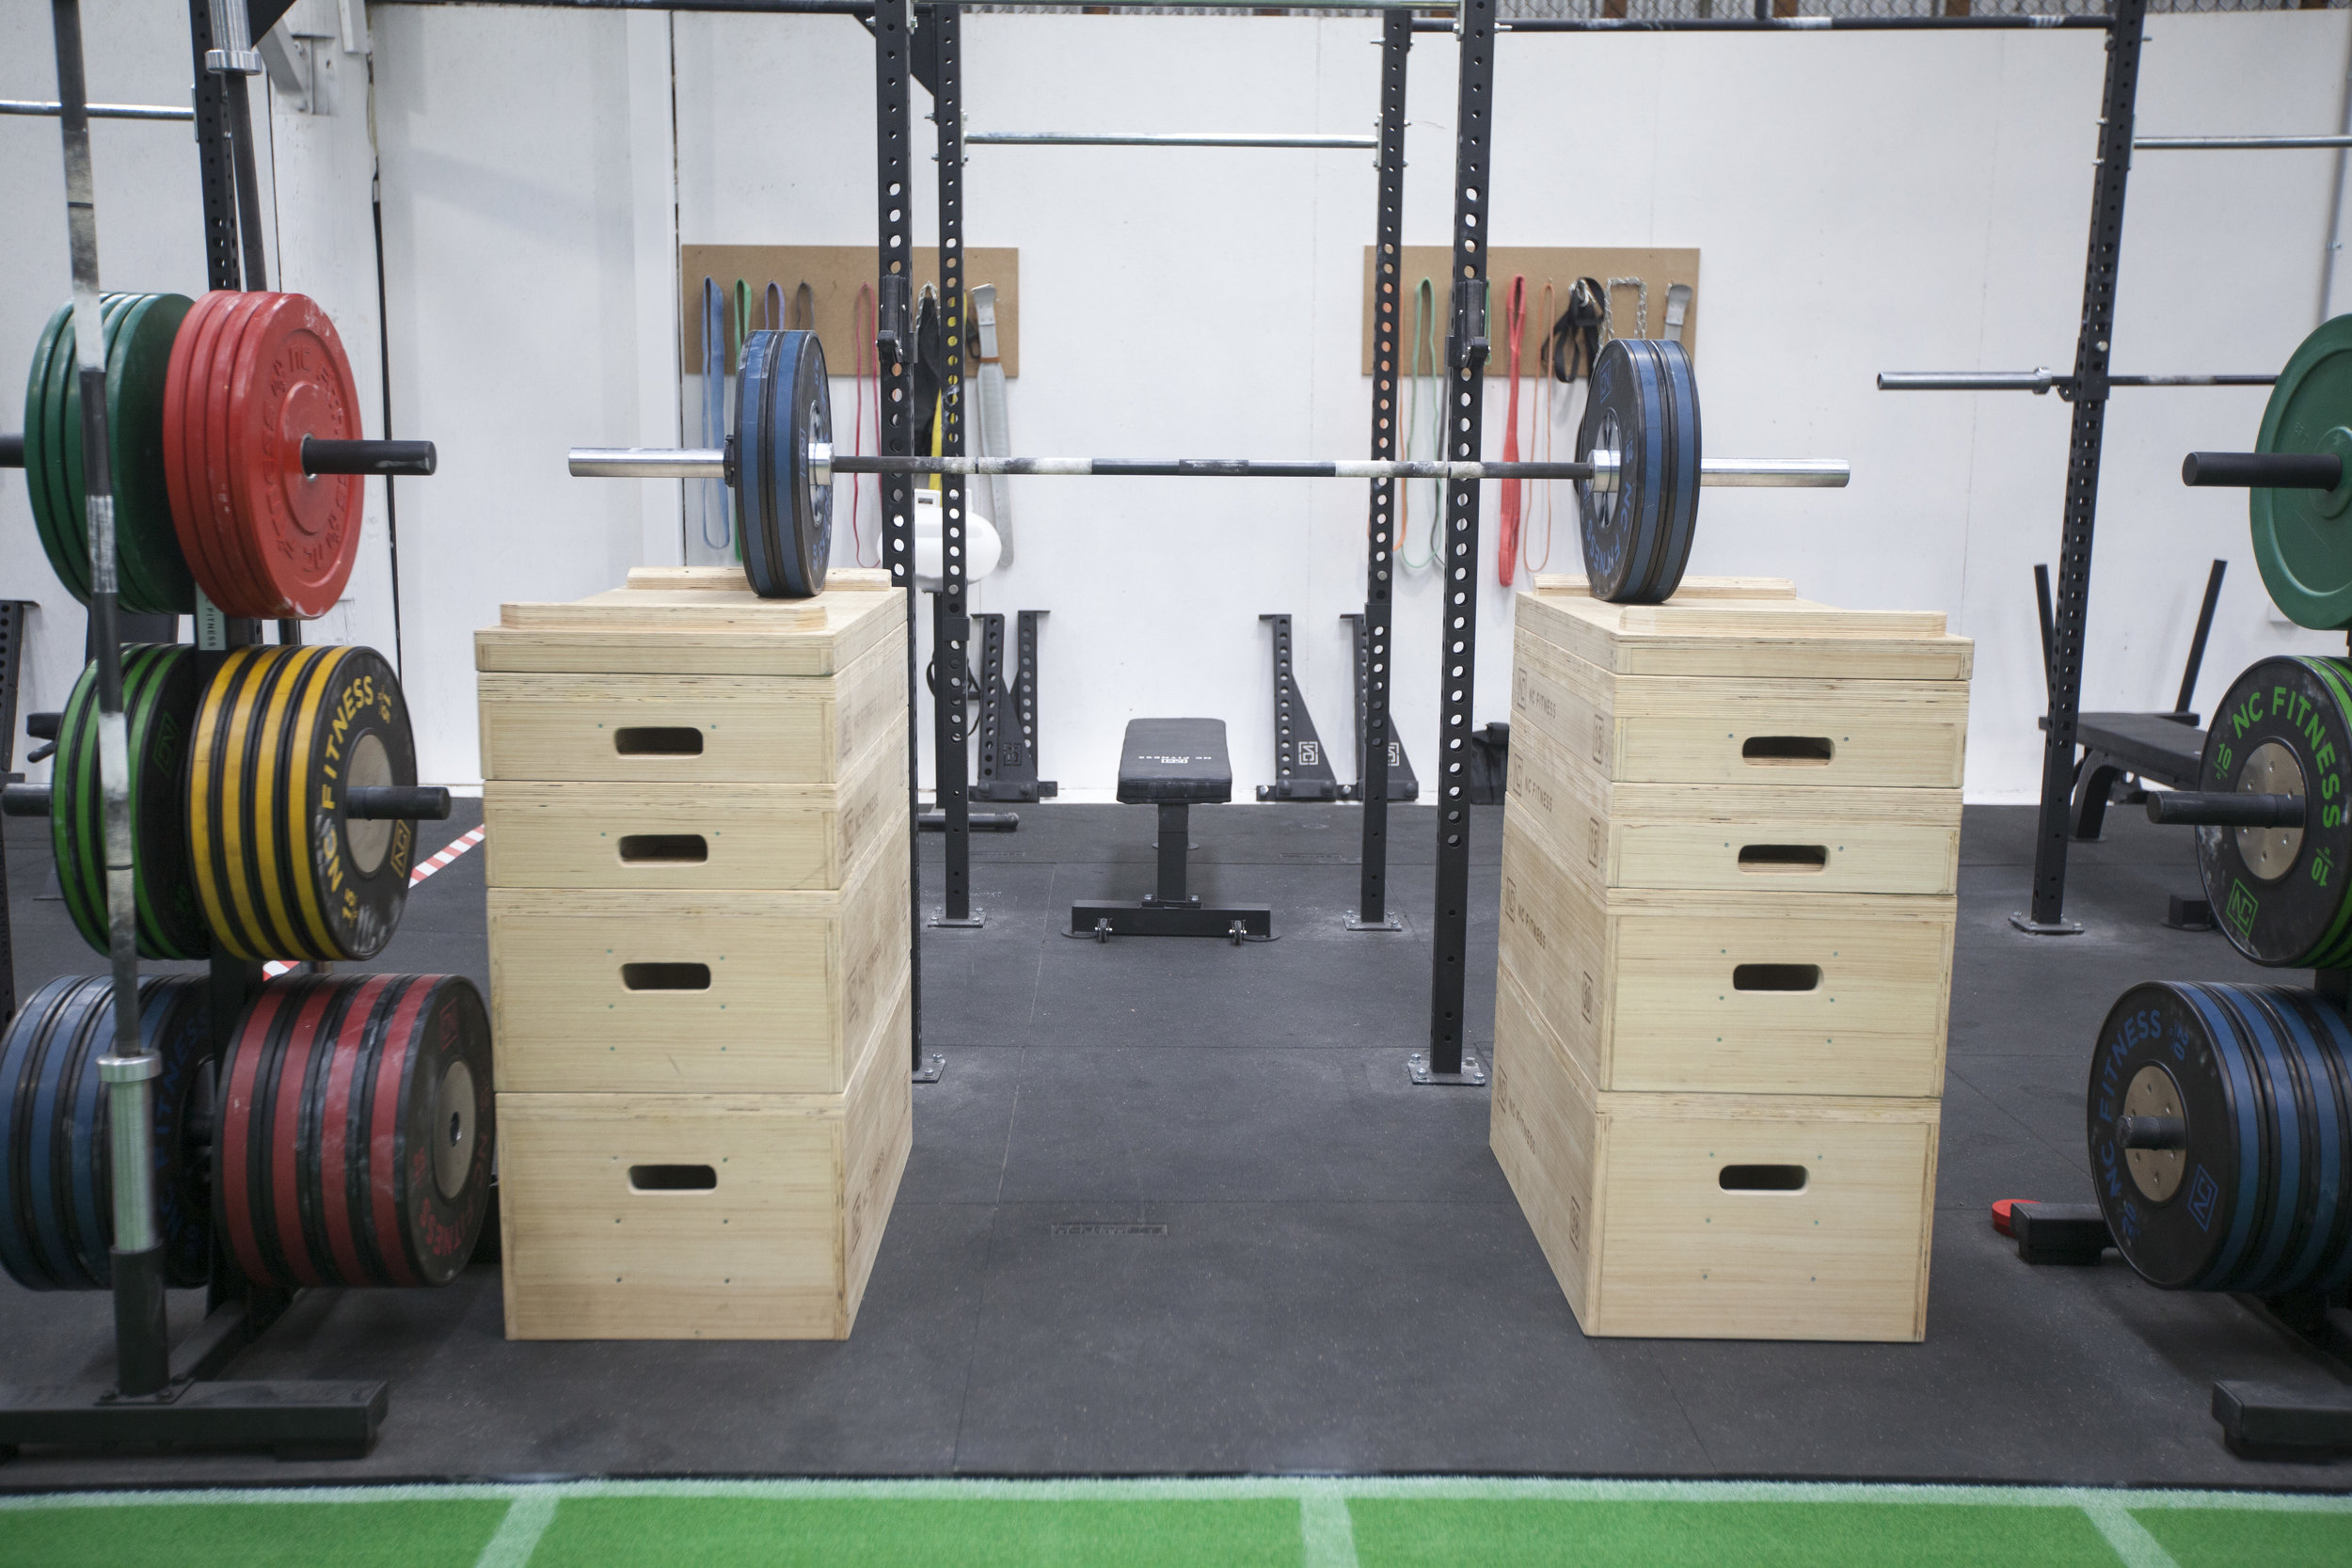 jerk boxes stacked